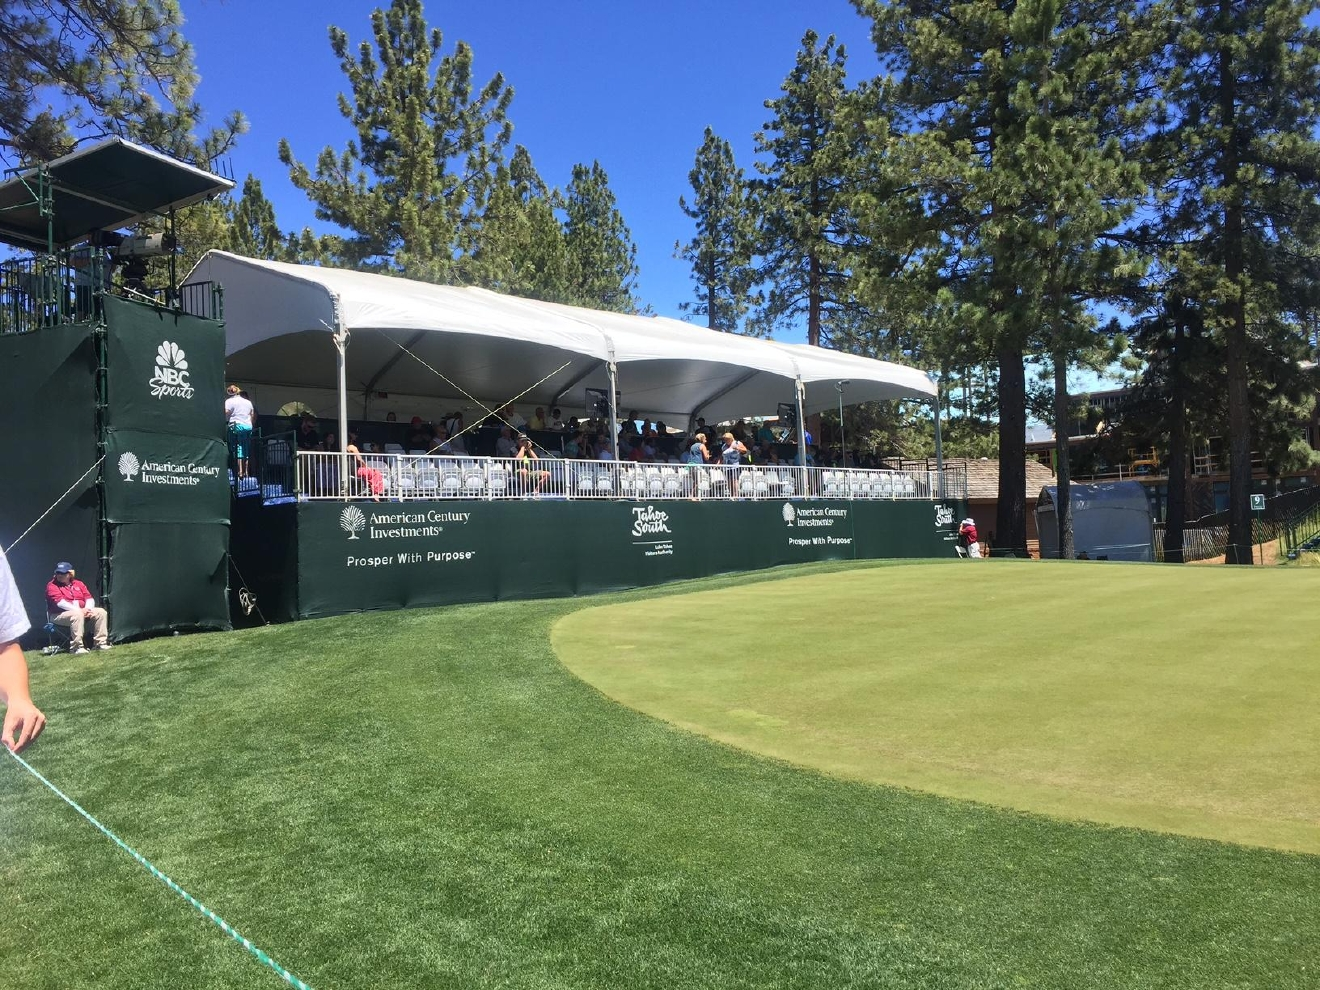 American Century Championship (Sinclair Broadcast Group)